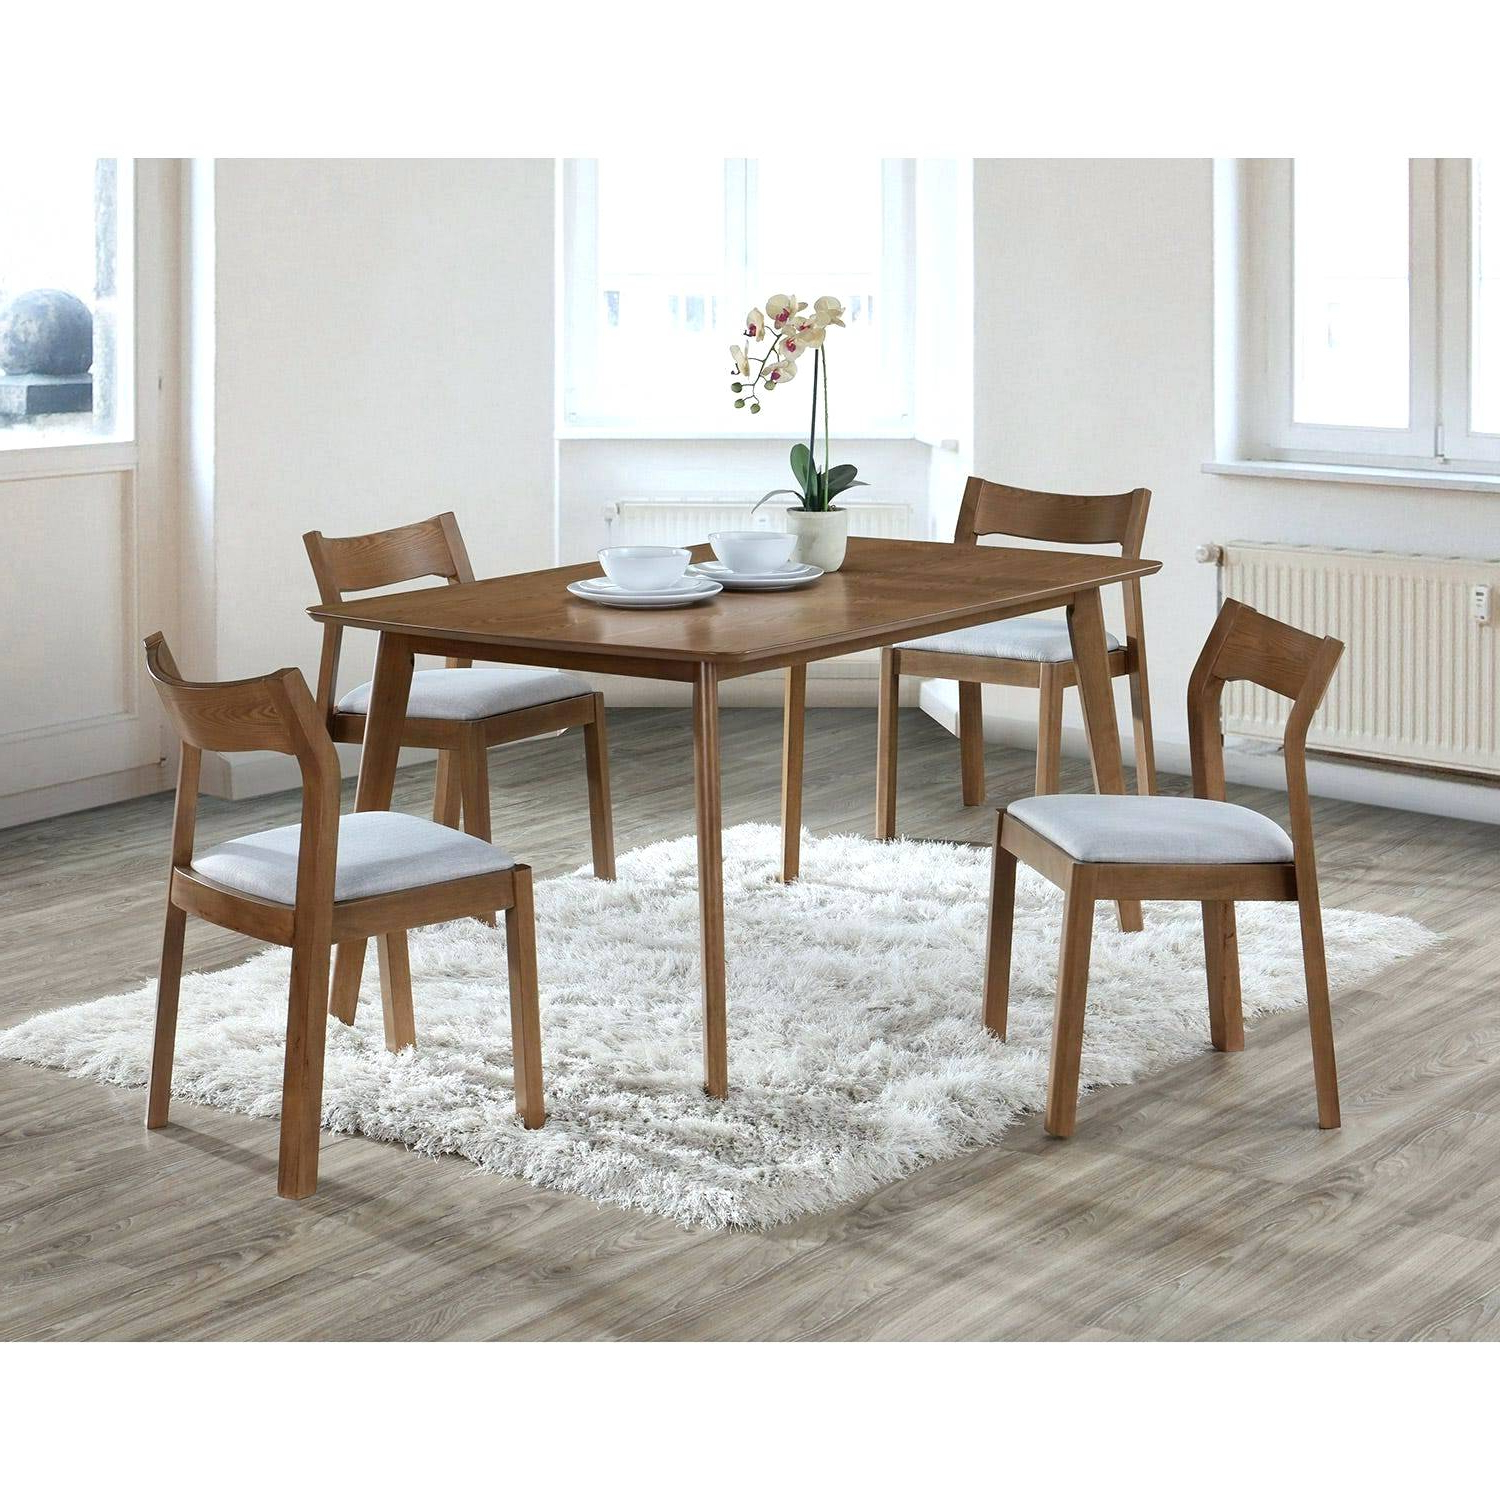 5 Piece Dining Table And Chairs – Heyricky In Fashionable Calla 5 Piece Dining Sets (View 3 of 20)